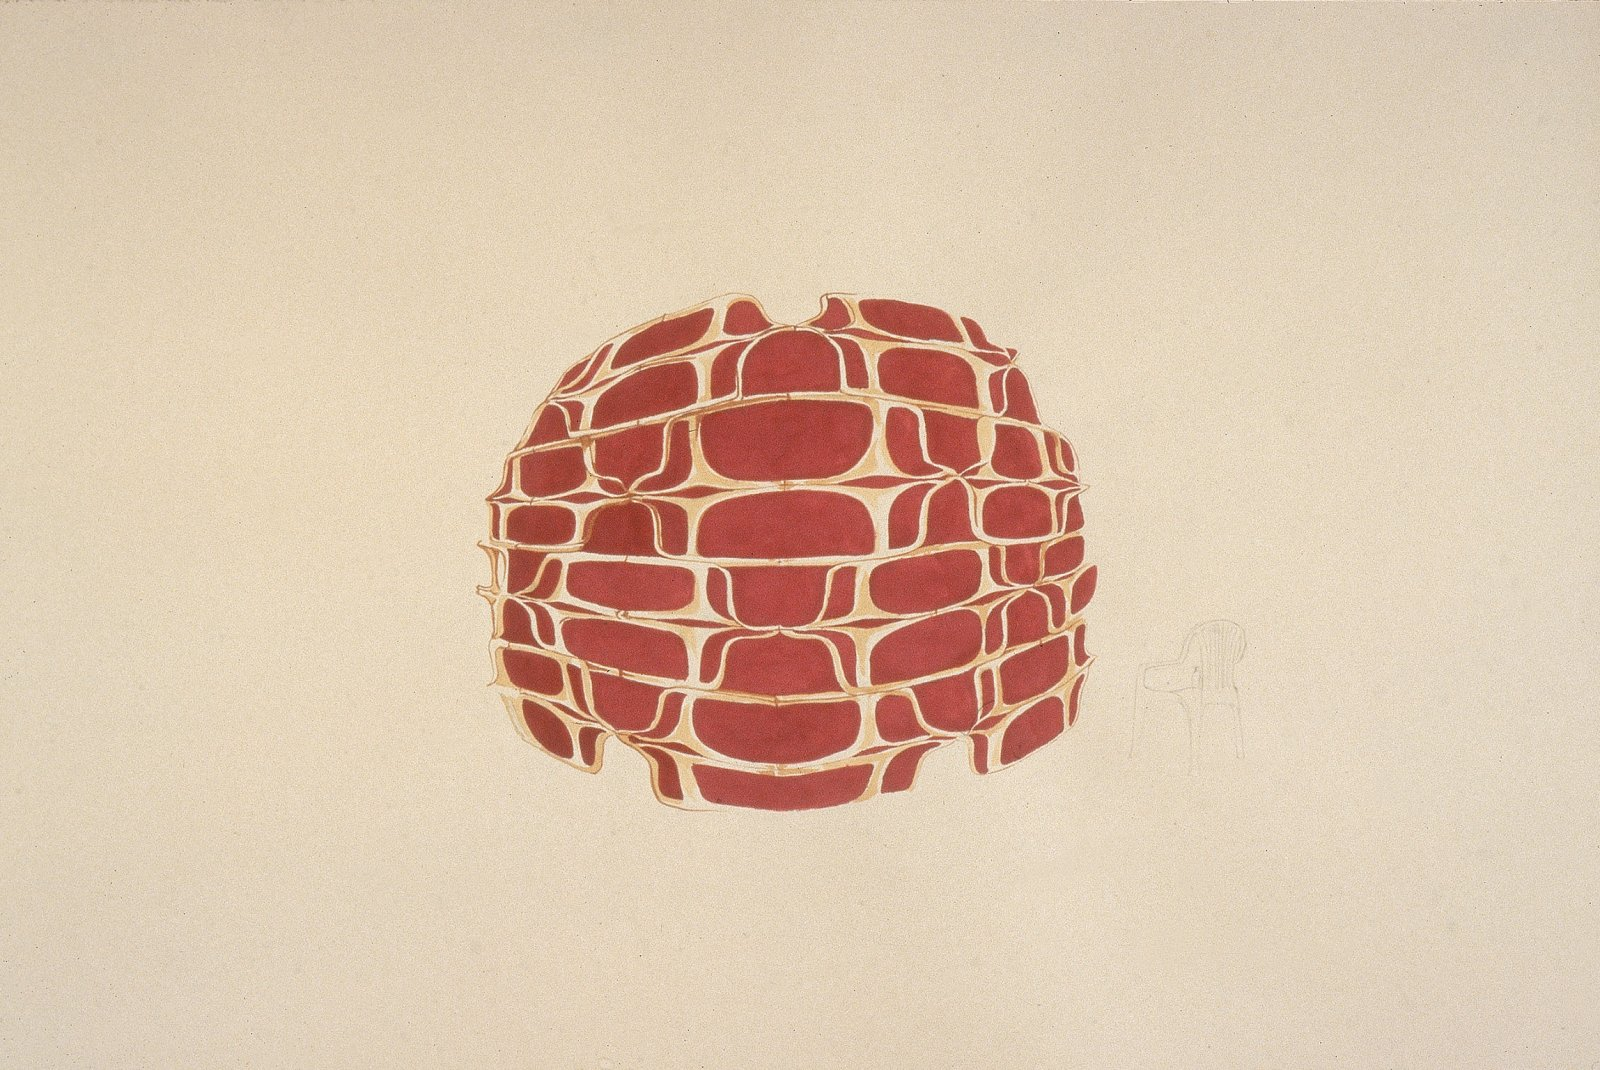 Brian Jungen,Bush Capsule Study, 2000, graphite and ink on paper, 40 x 52 in. (102 x 132 cm)